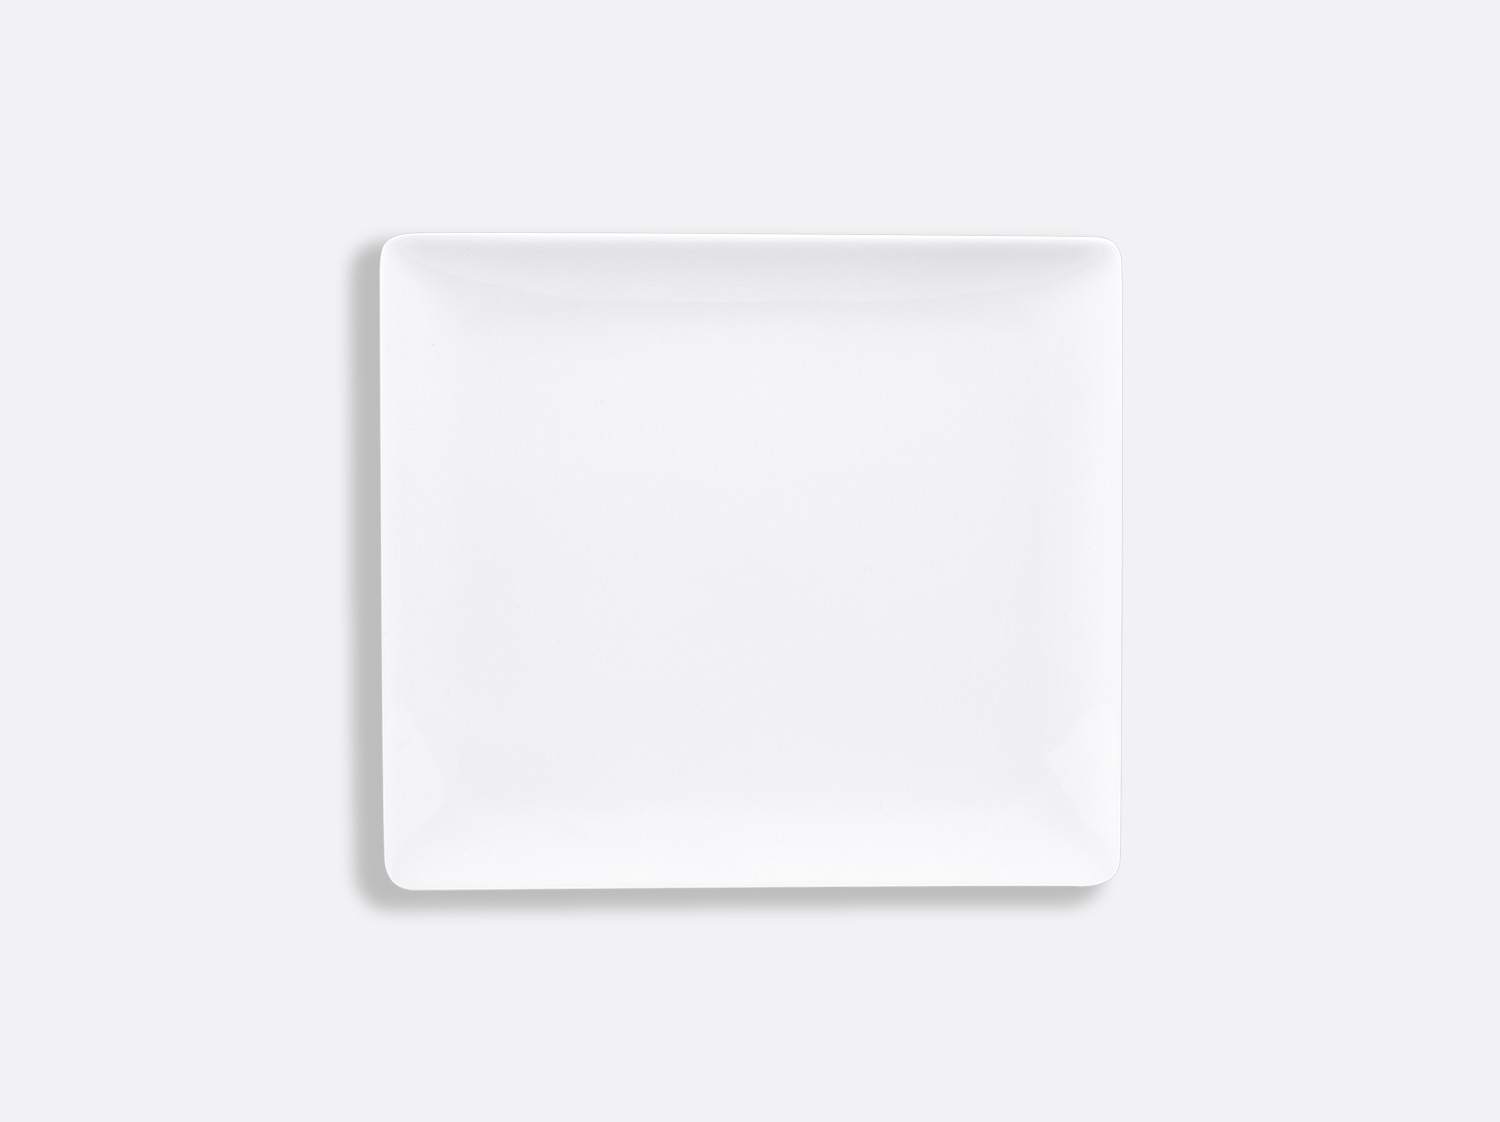 Plateau rectangulaire 17 x 15 cm en porcelaine de la collection FANTAISIES BLANCHES Bernardaud